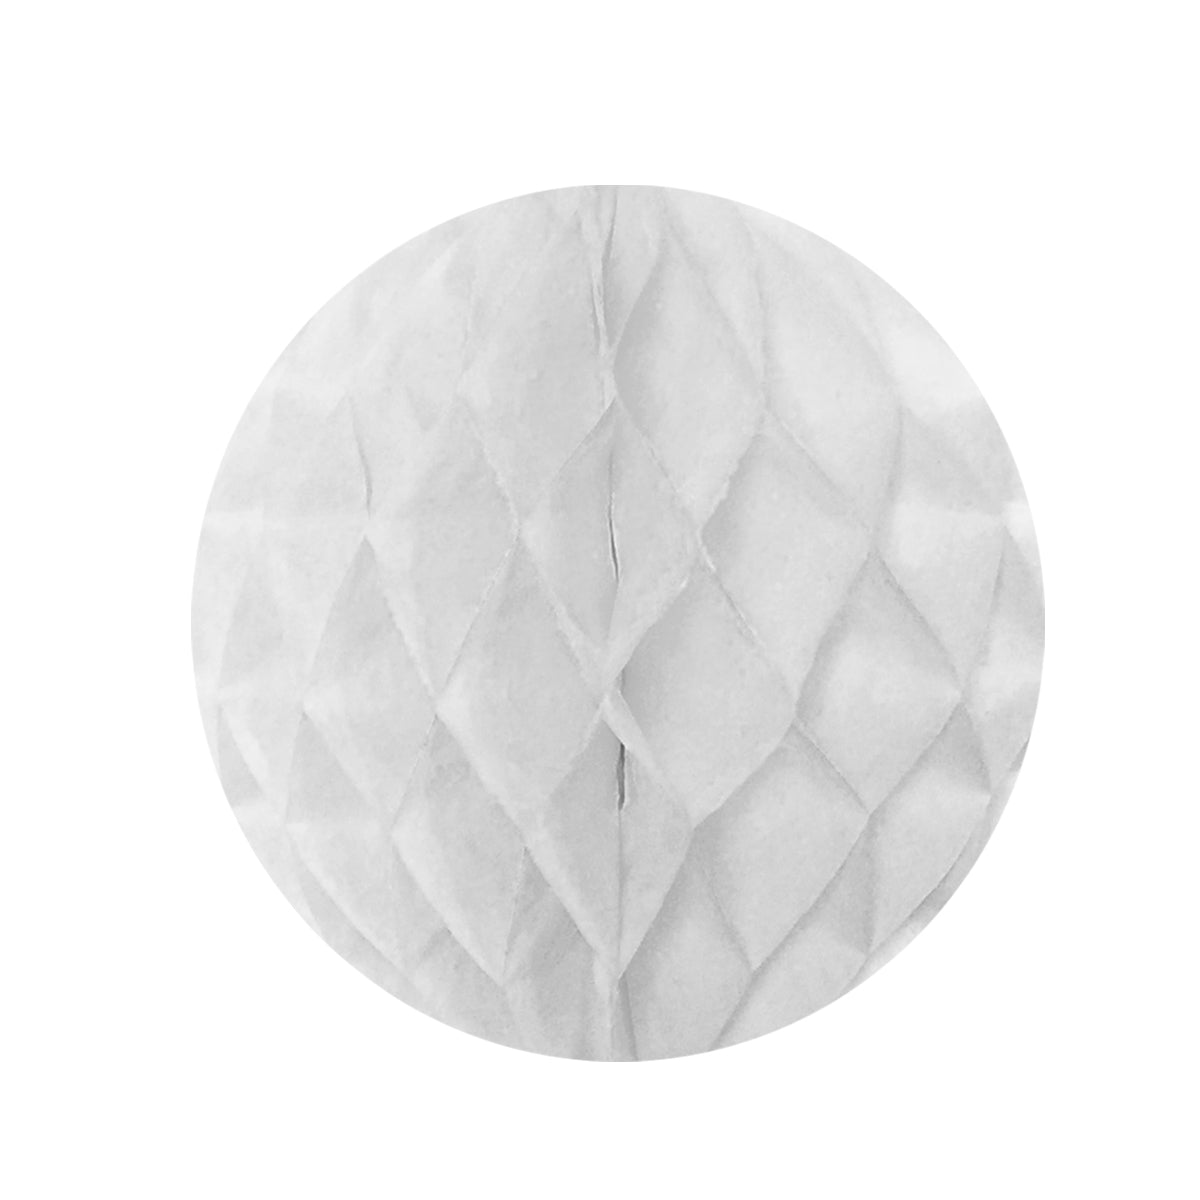 "Wrapables 14"" Set of 2 Tissue Honeycomb Ball Party Decorations"